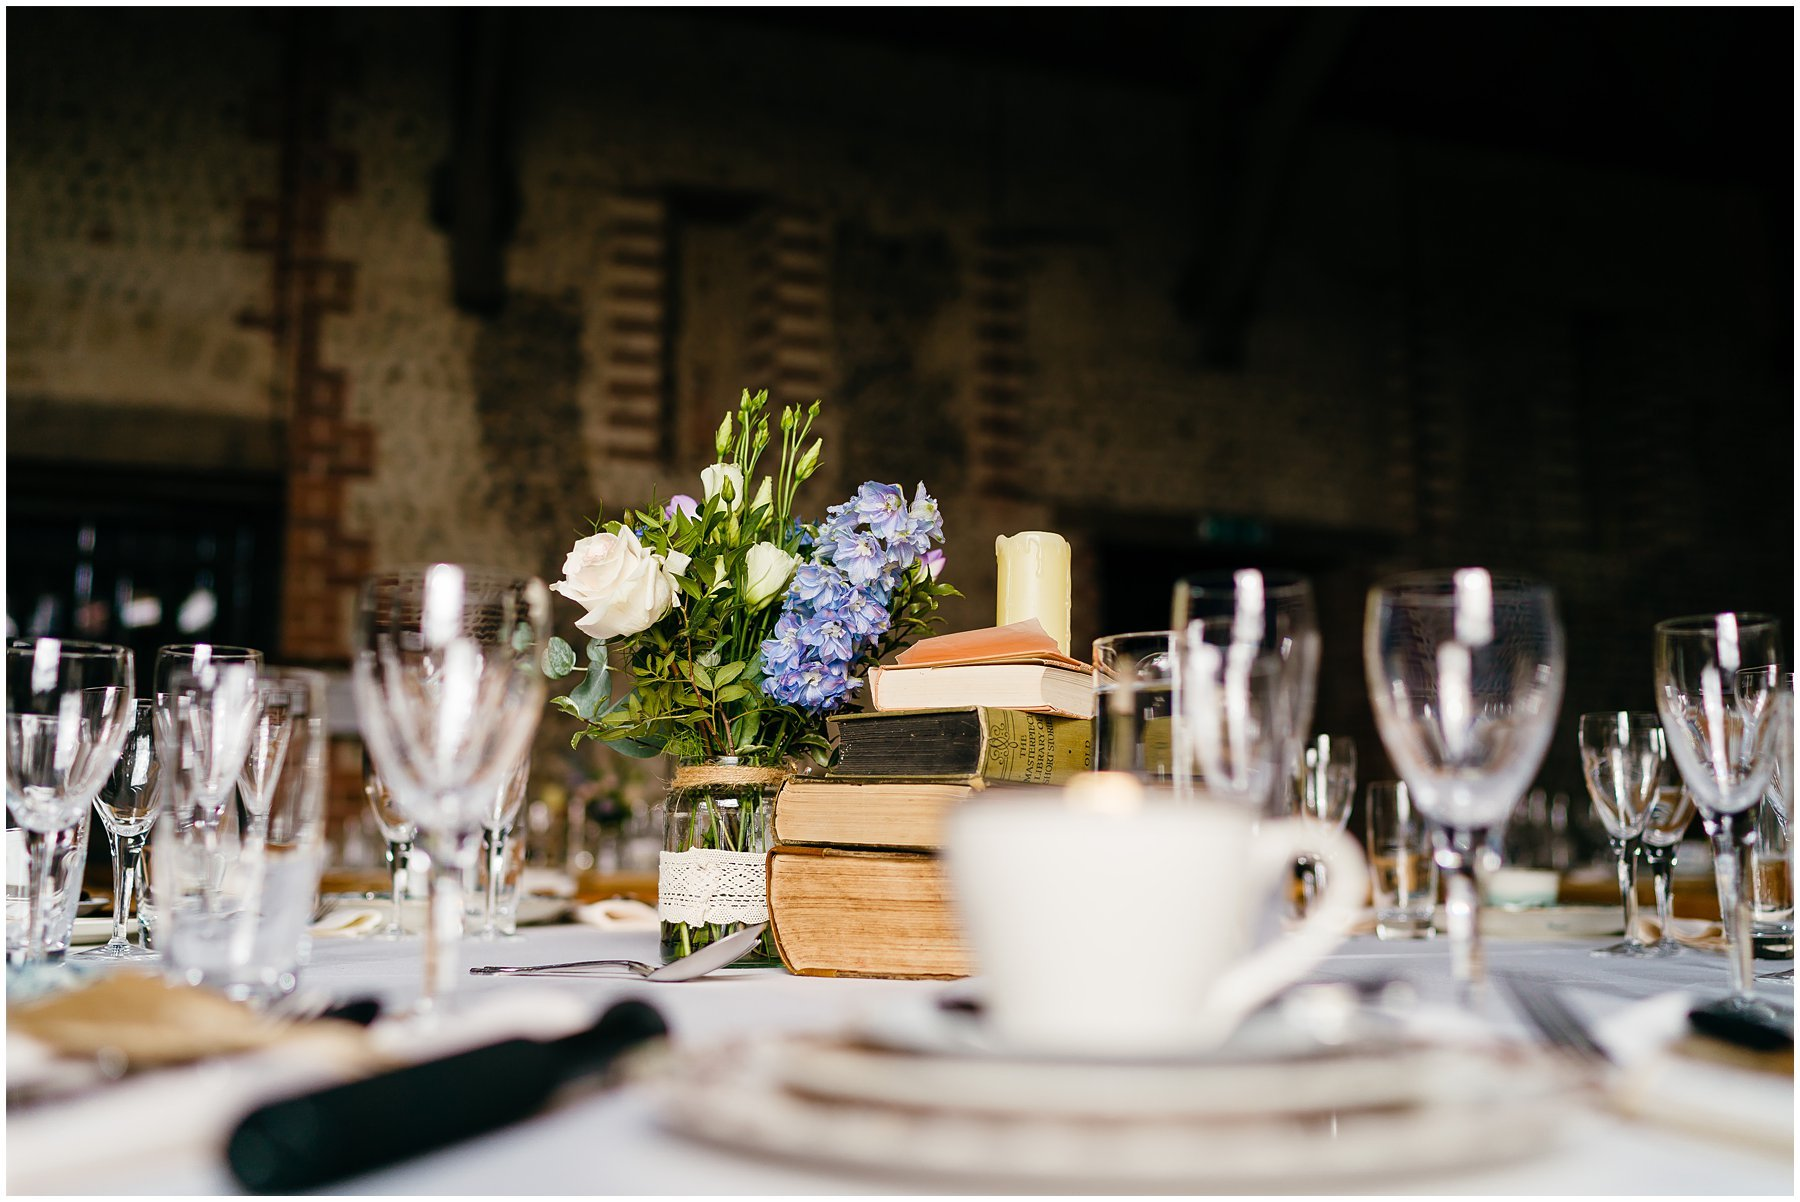 Andy Davison - Waxham Great Barn Wedding Photographer